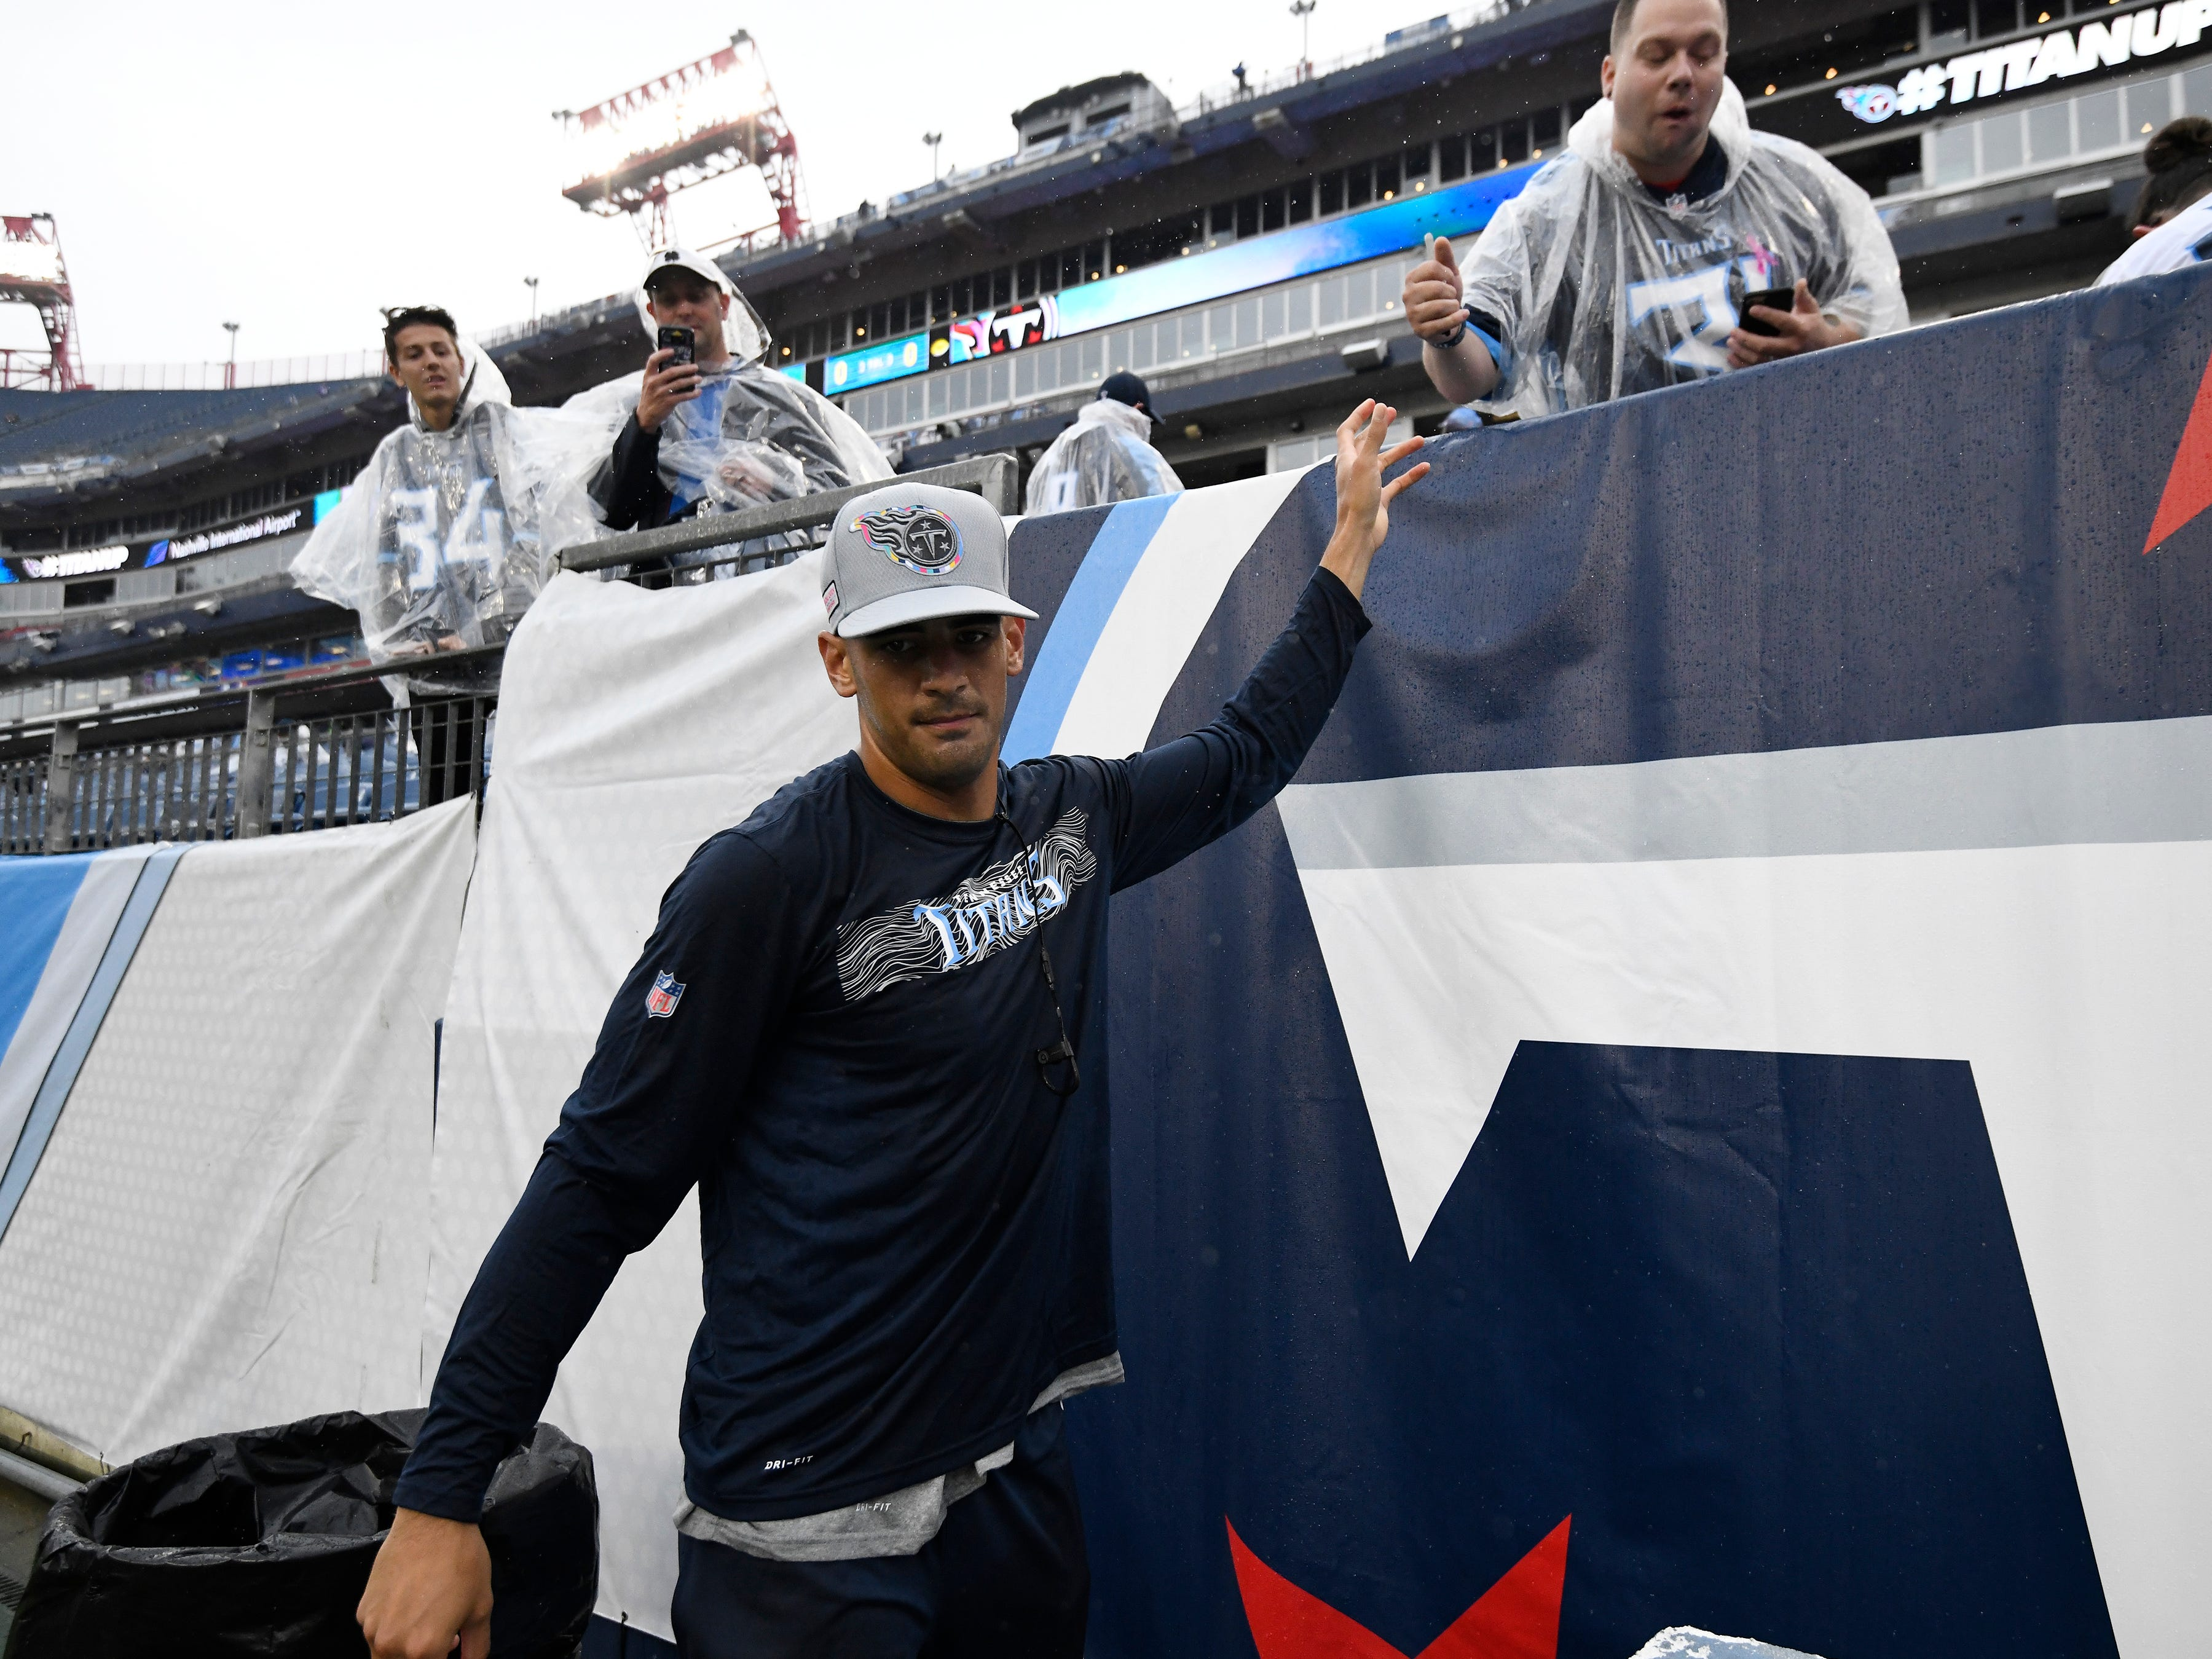 Titans quarterback Marcus Mariota (8) greets fans before the game at at Nissan Stadium Sunday, Oct. 14, 2018, in Nashville, Tenn.